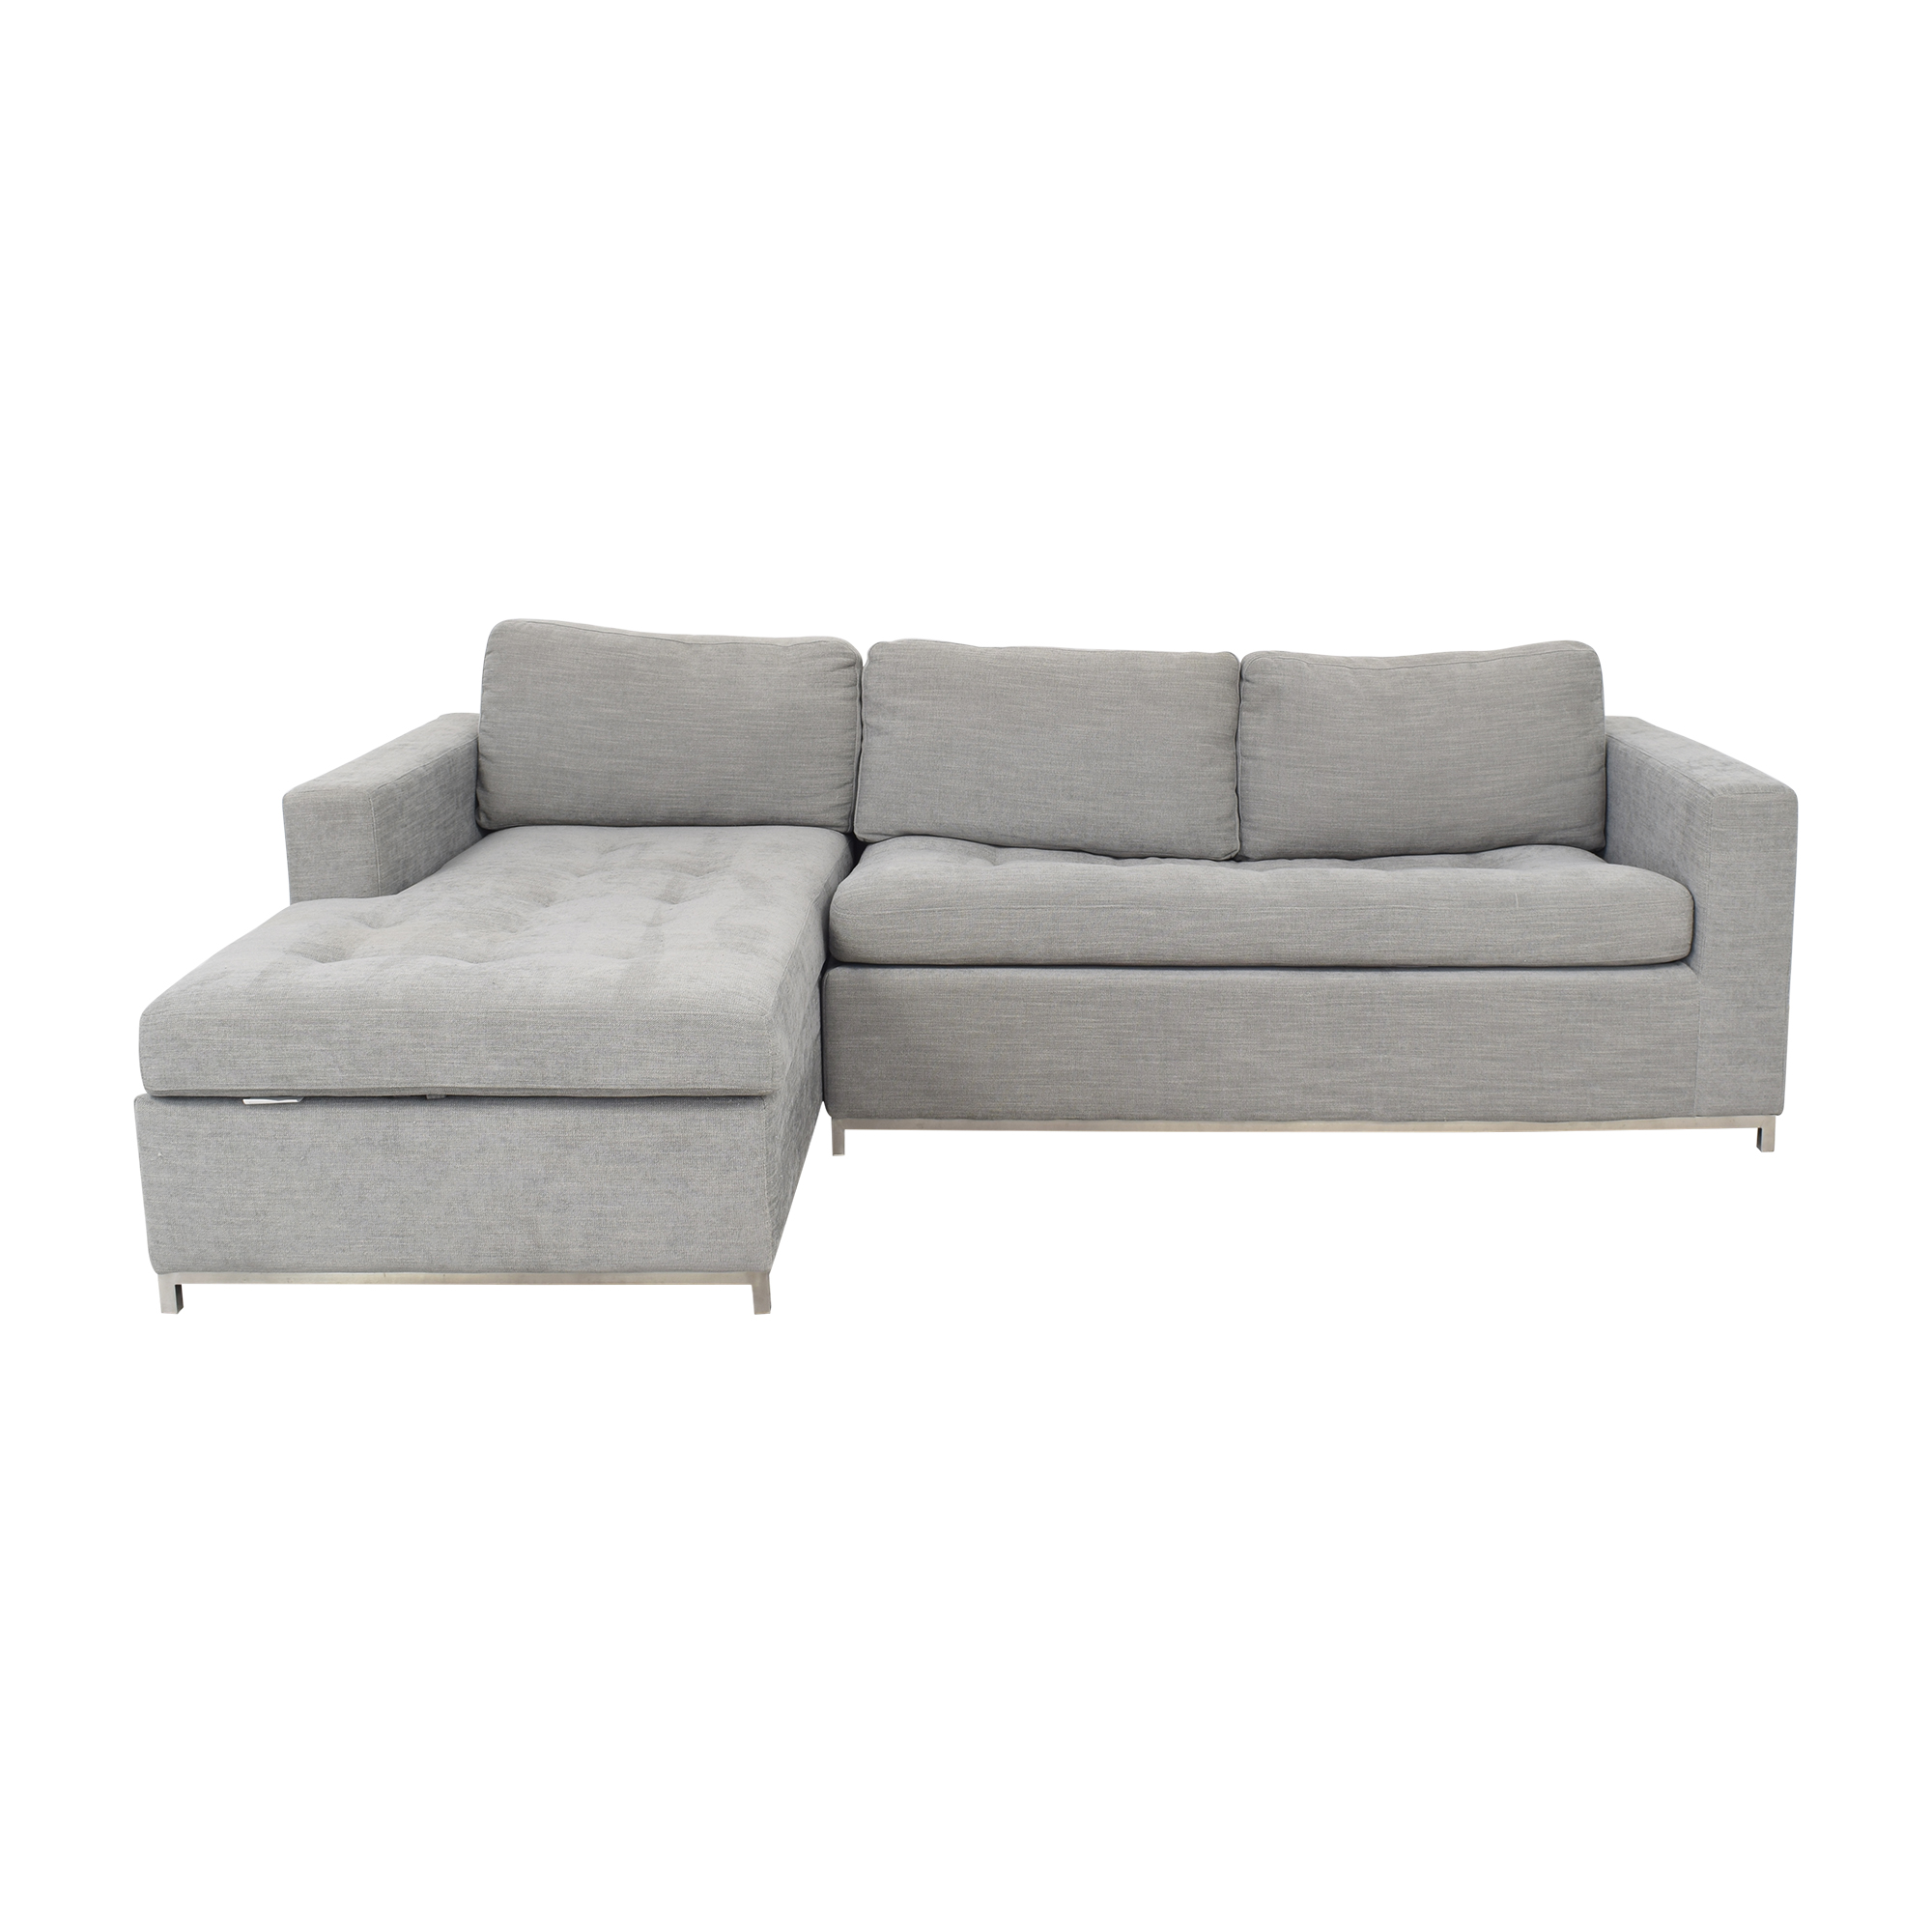 Article Article Soma Sofa Bed used